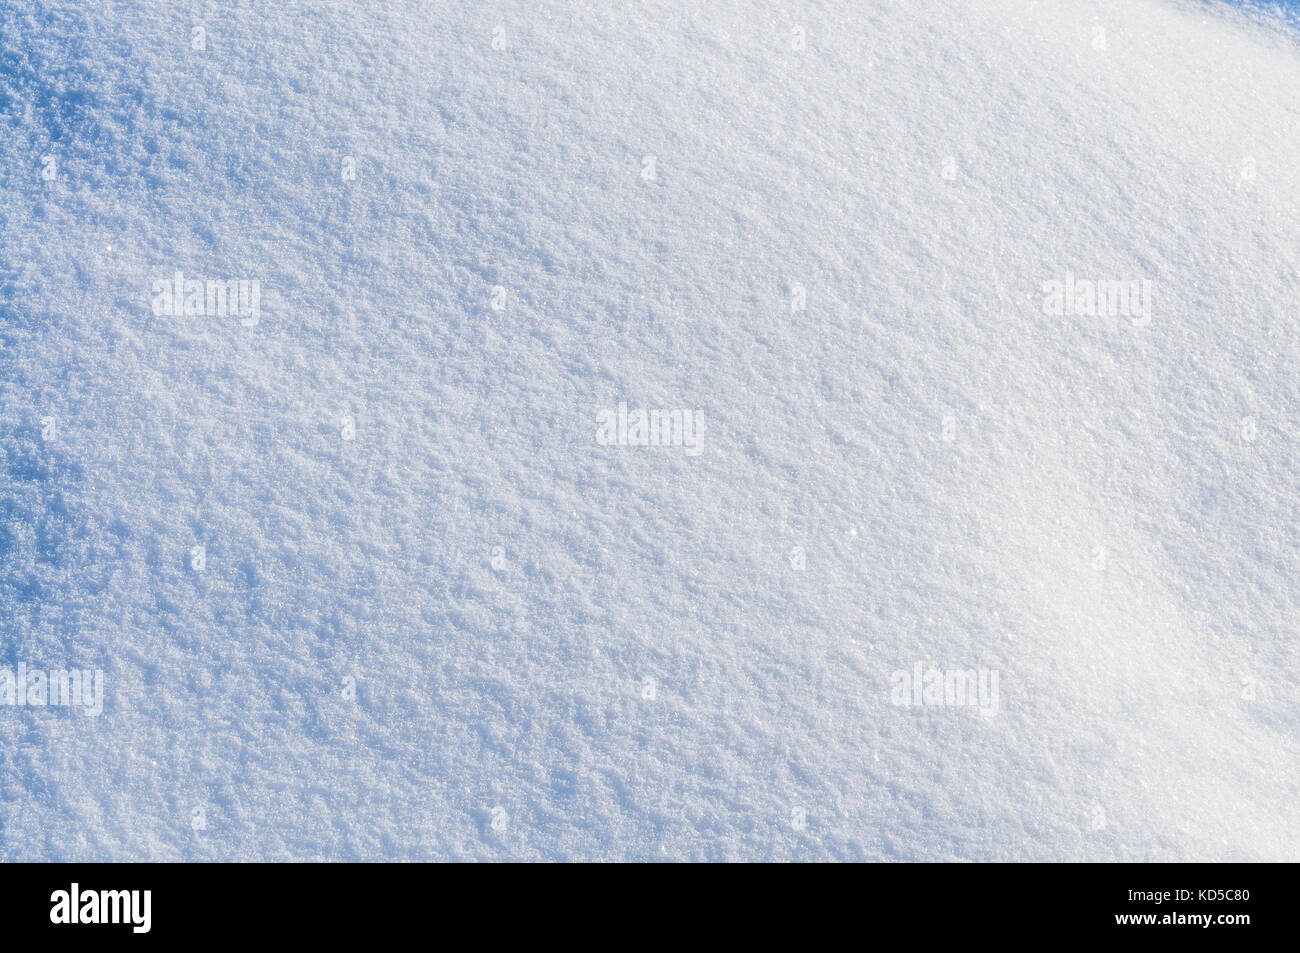 Clear fresh snow as background or texture Stock Photo